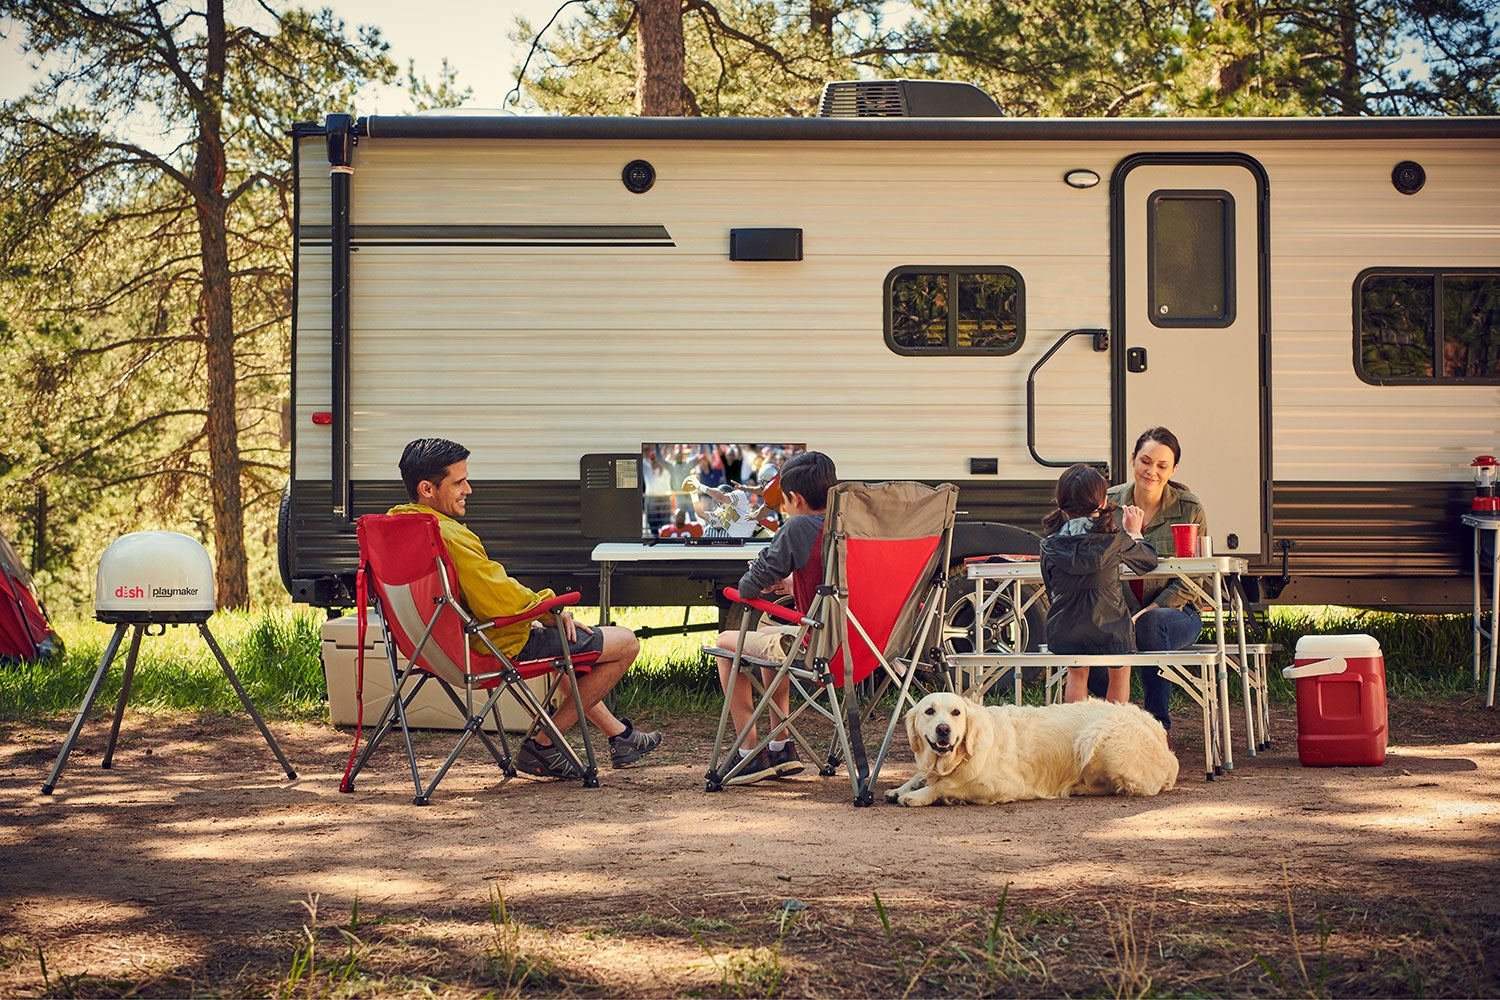 A group of campers sitting outside of an RV.